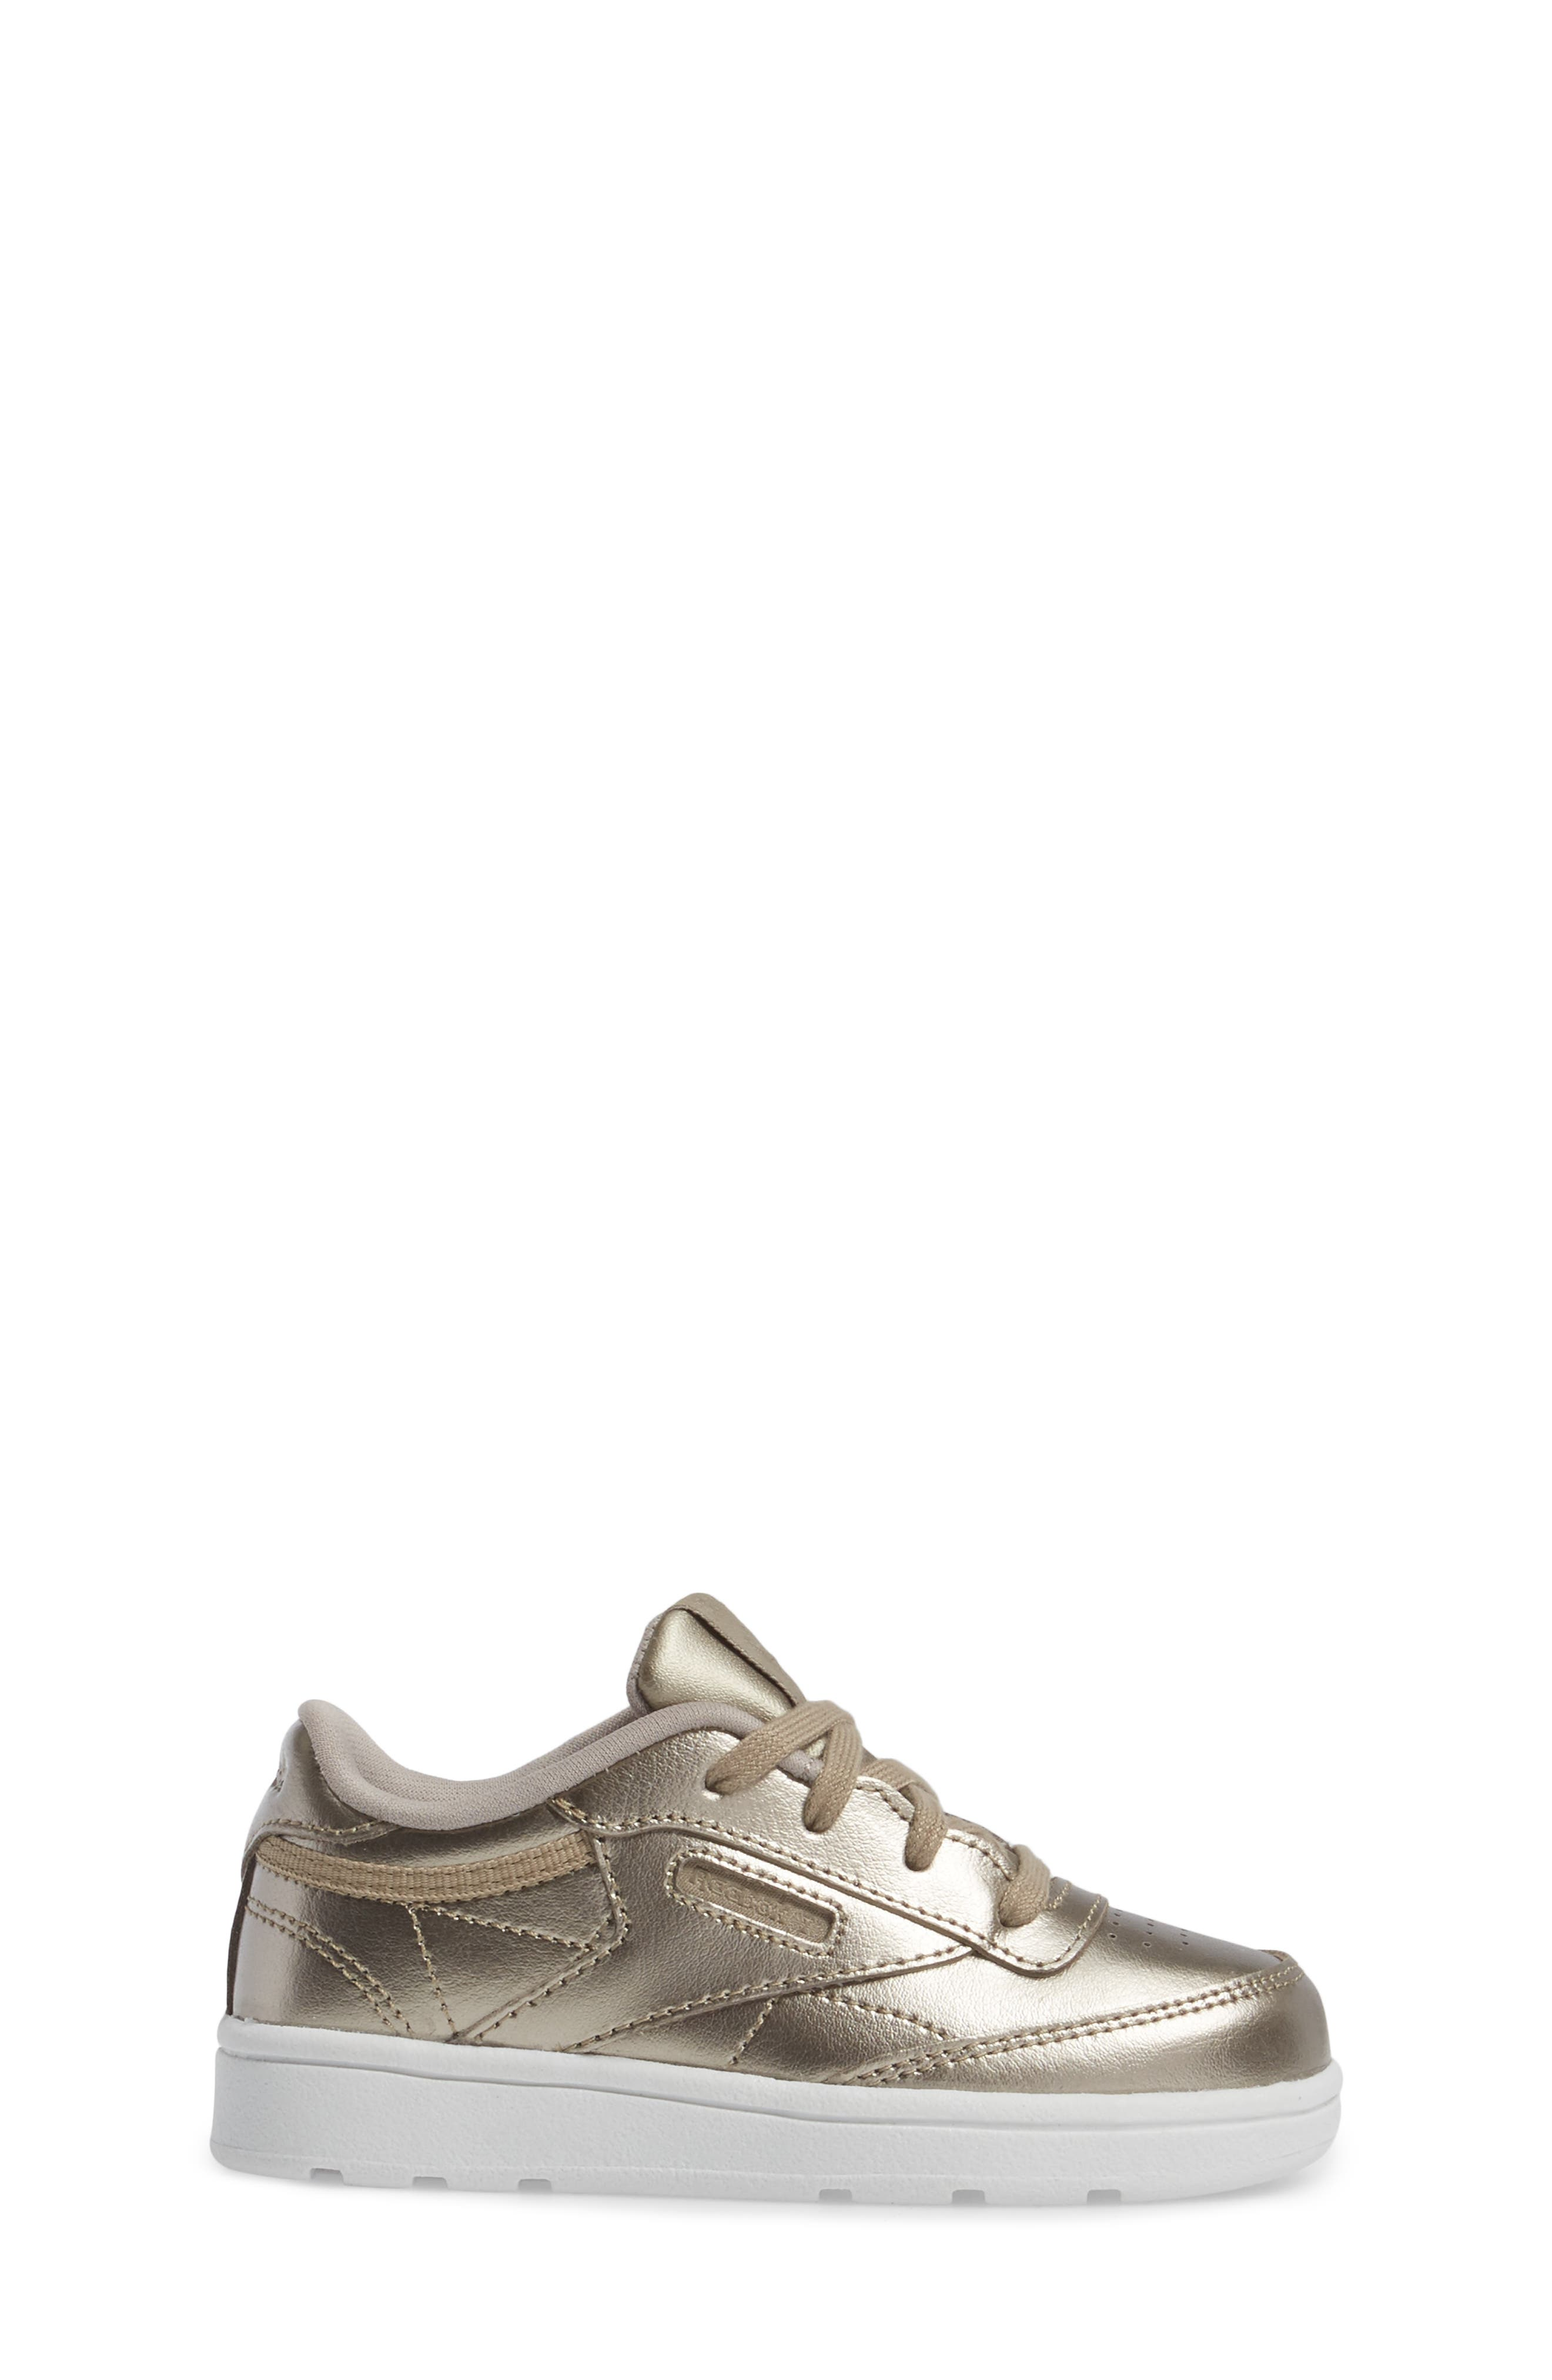 Alternate Image 3  - Reebok Club C Melted Metallic Sneaker (Baby, Walker & Toddler)